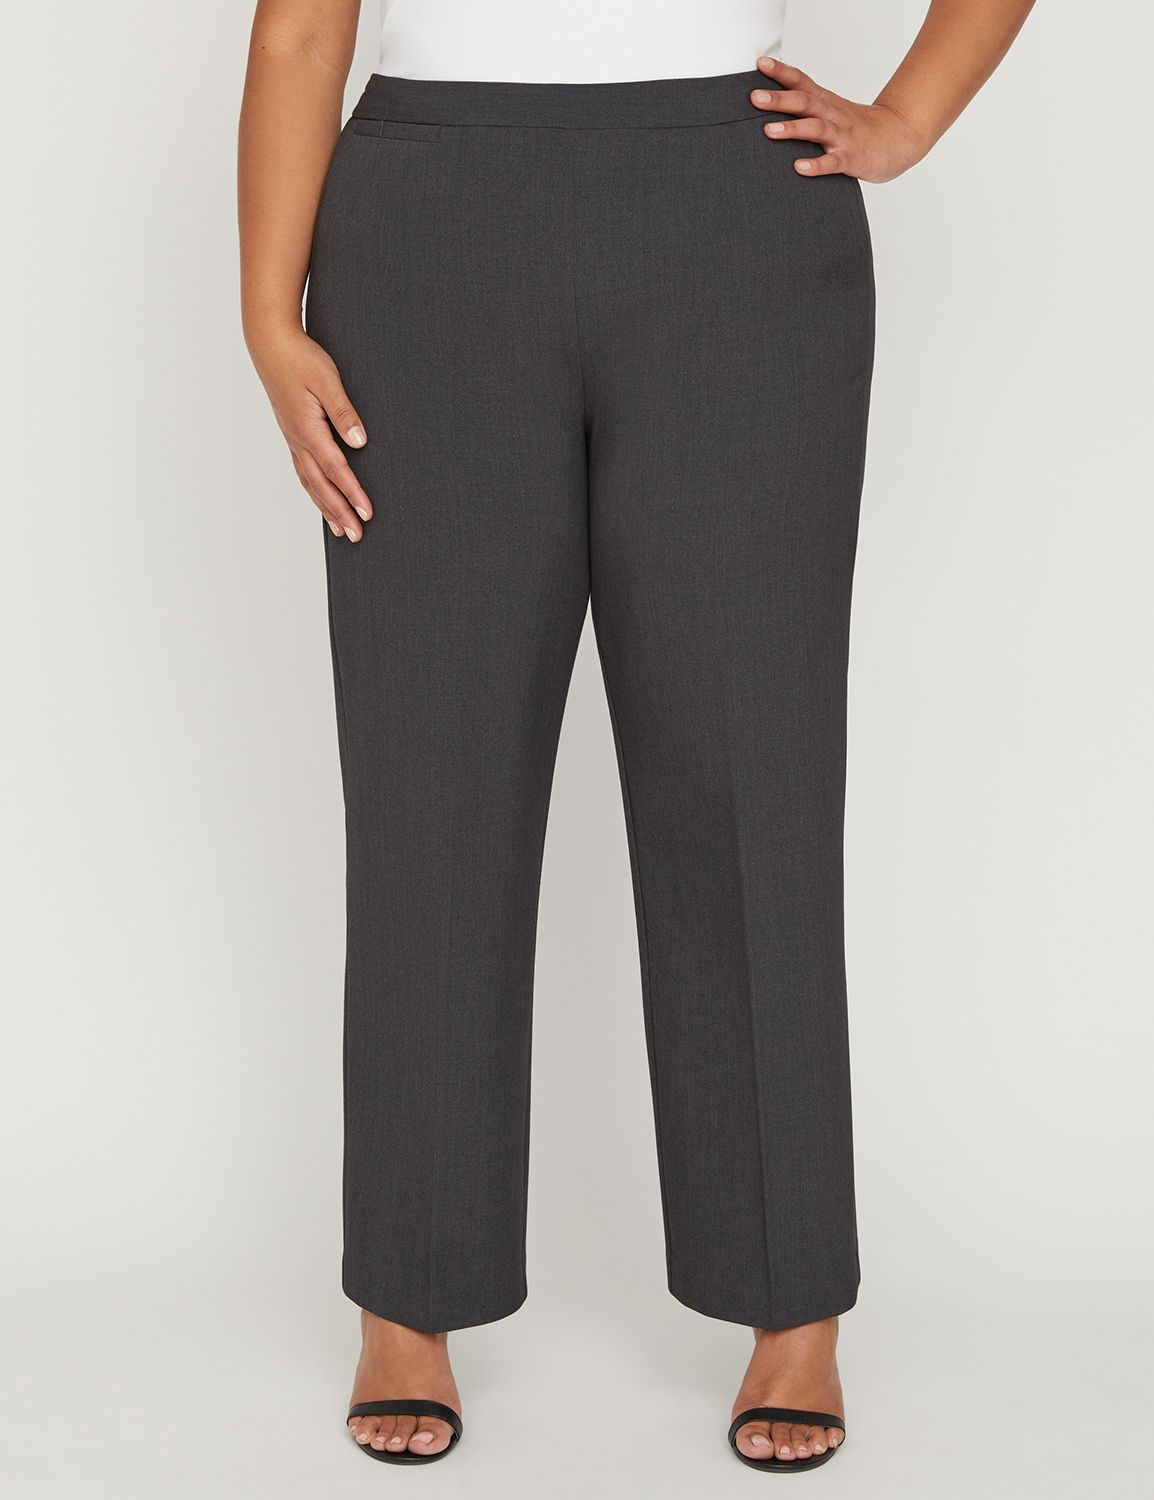 Heathered Refined Pant Heathered Refined Fit Pant MP-300044124